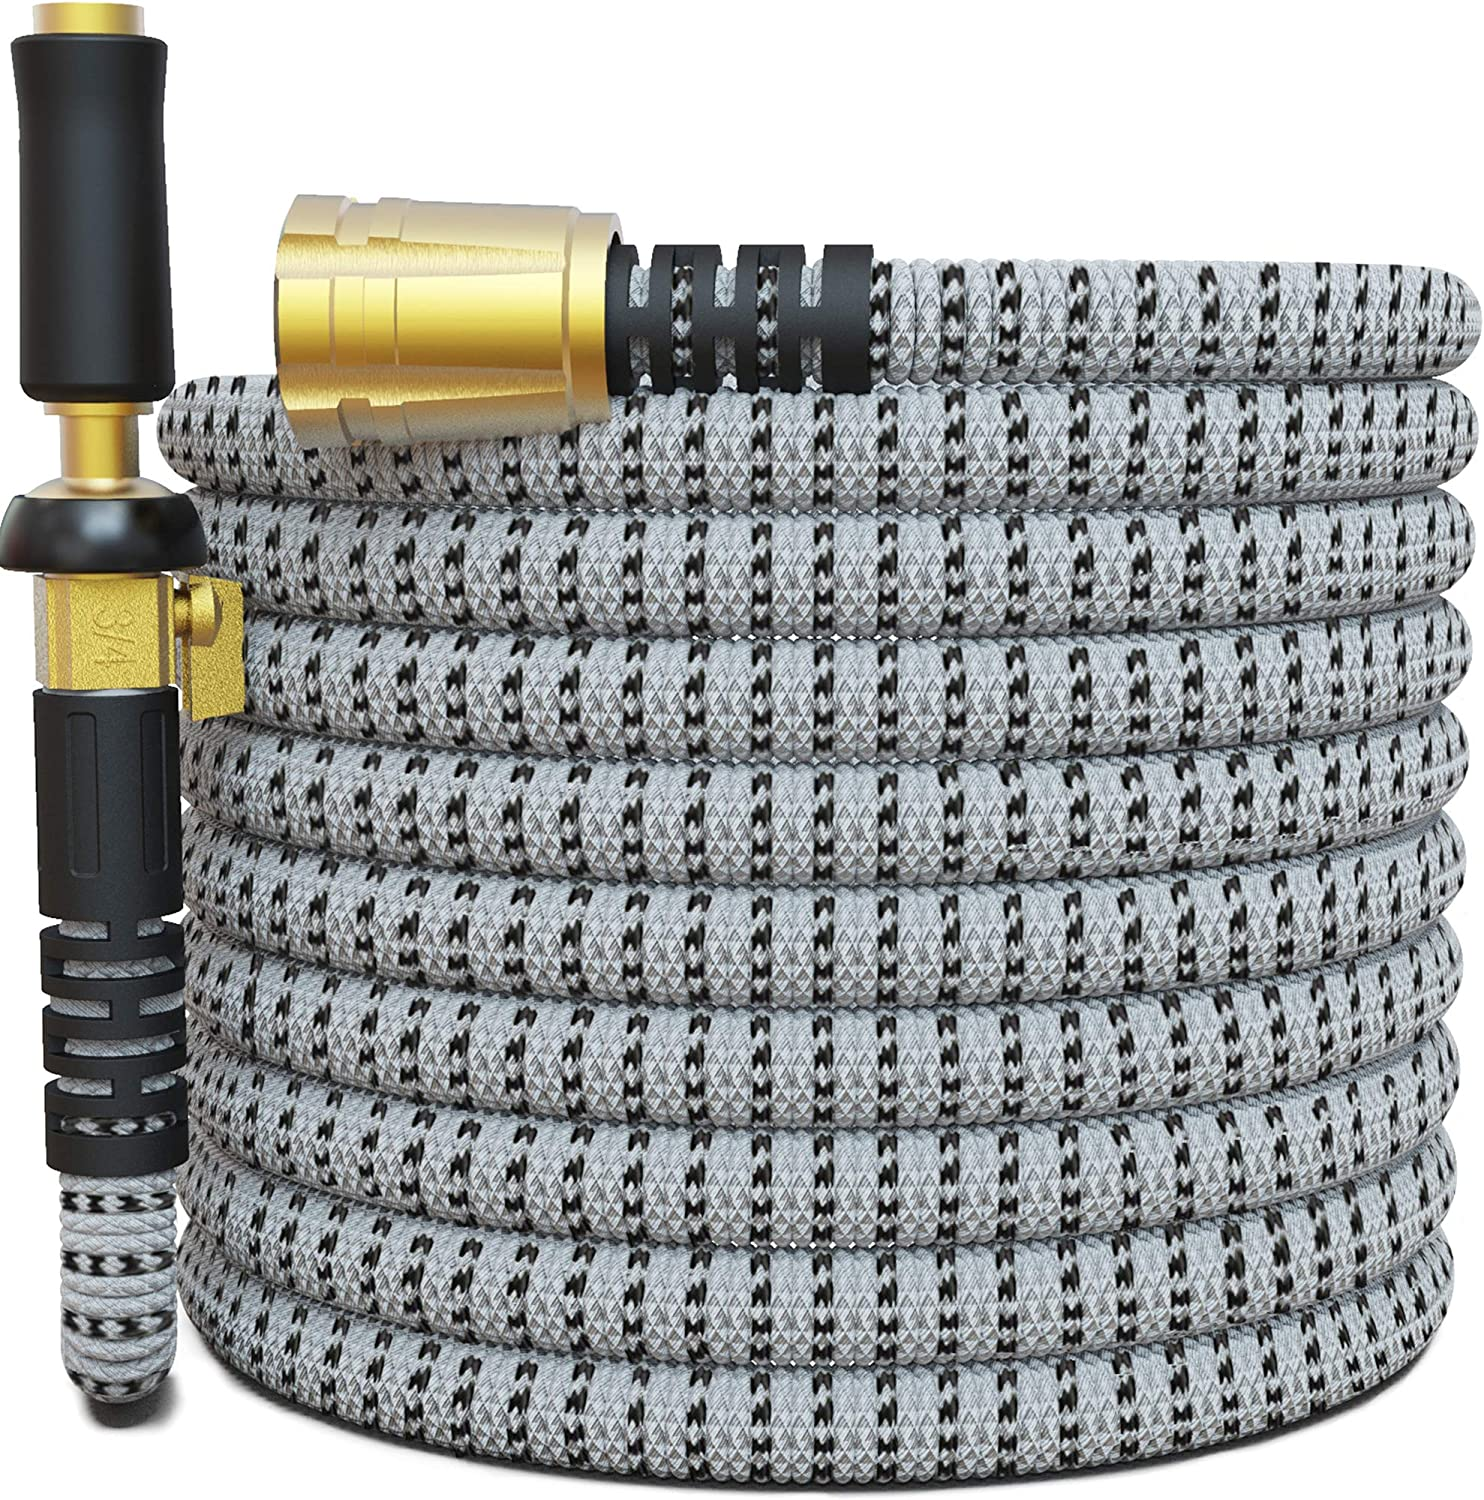 "TITAN 75FT Garden Hose - All New Expandable Water Hose with Triple Latex Core 3/4"" Easy Removal Solid Brass Fittings Expanding Extra Strength Fabric Flexible Hose with Jet Nozzle and Washers (H)"